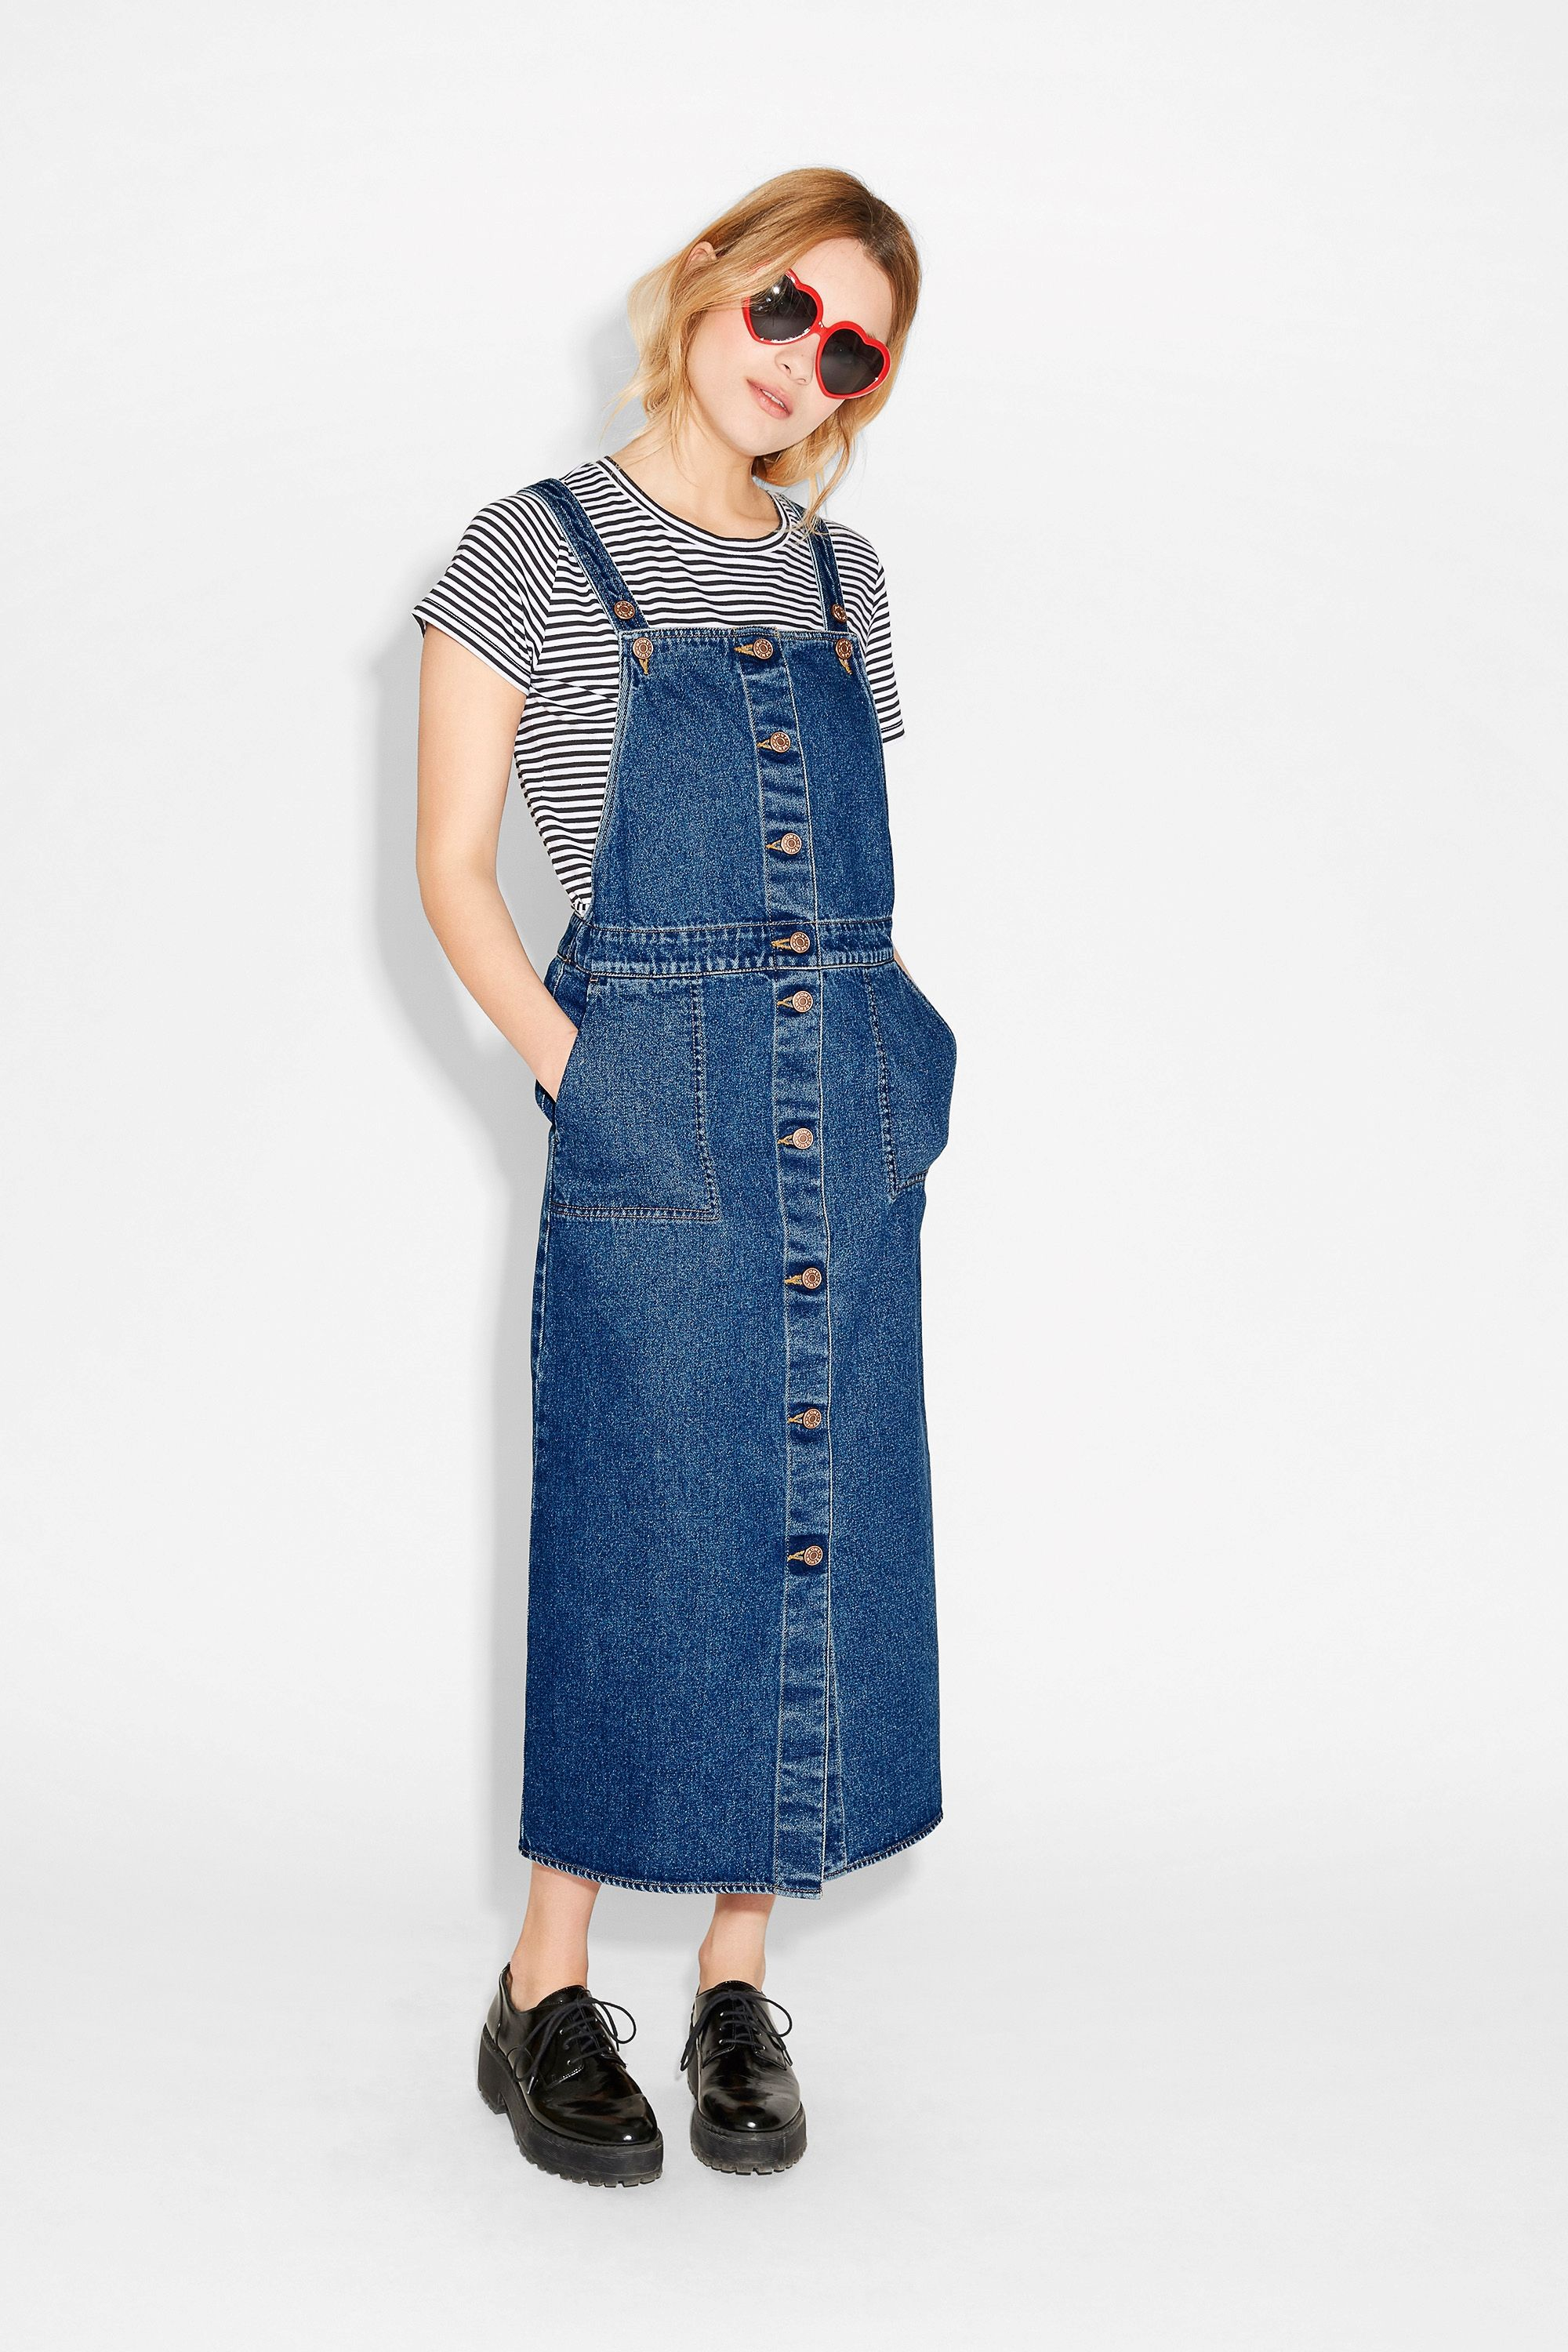 This bewitchingly cute dungaree dress is a truly multi-seasonal piece of denim. Styled with a polo? Amazing.